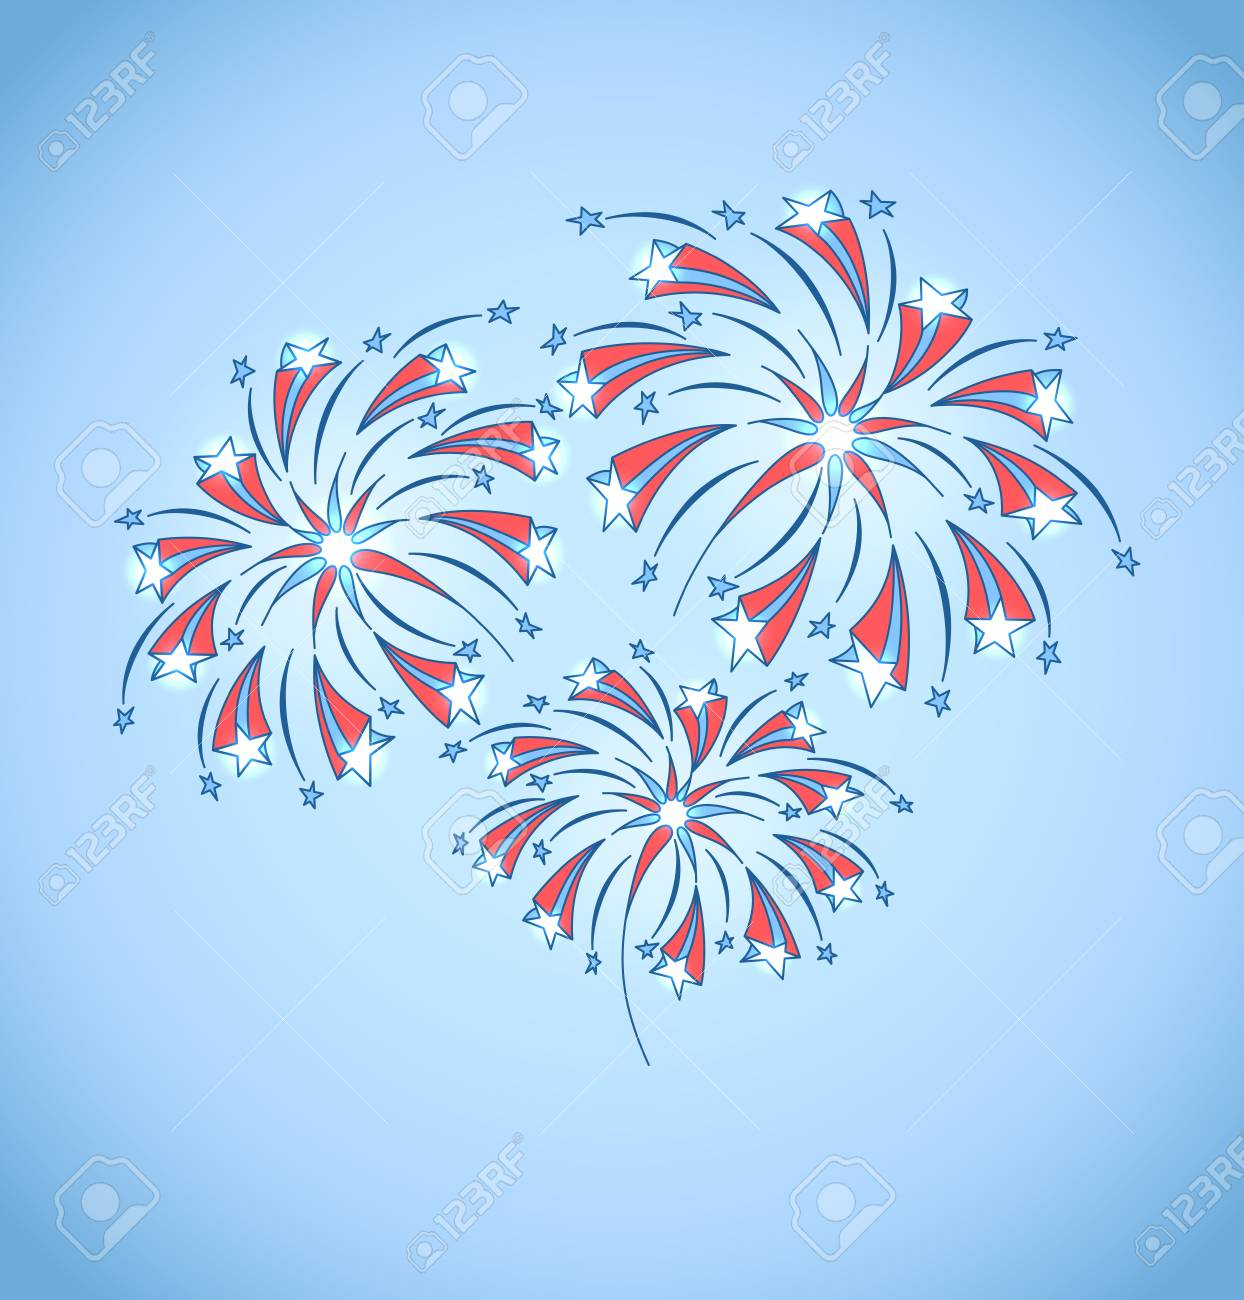 Background with festive fireworks in honor of Independence day  Vector Illustration Stock Vector - 20371283